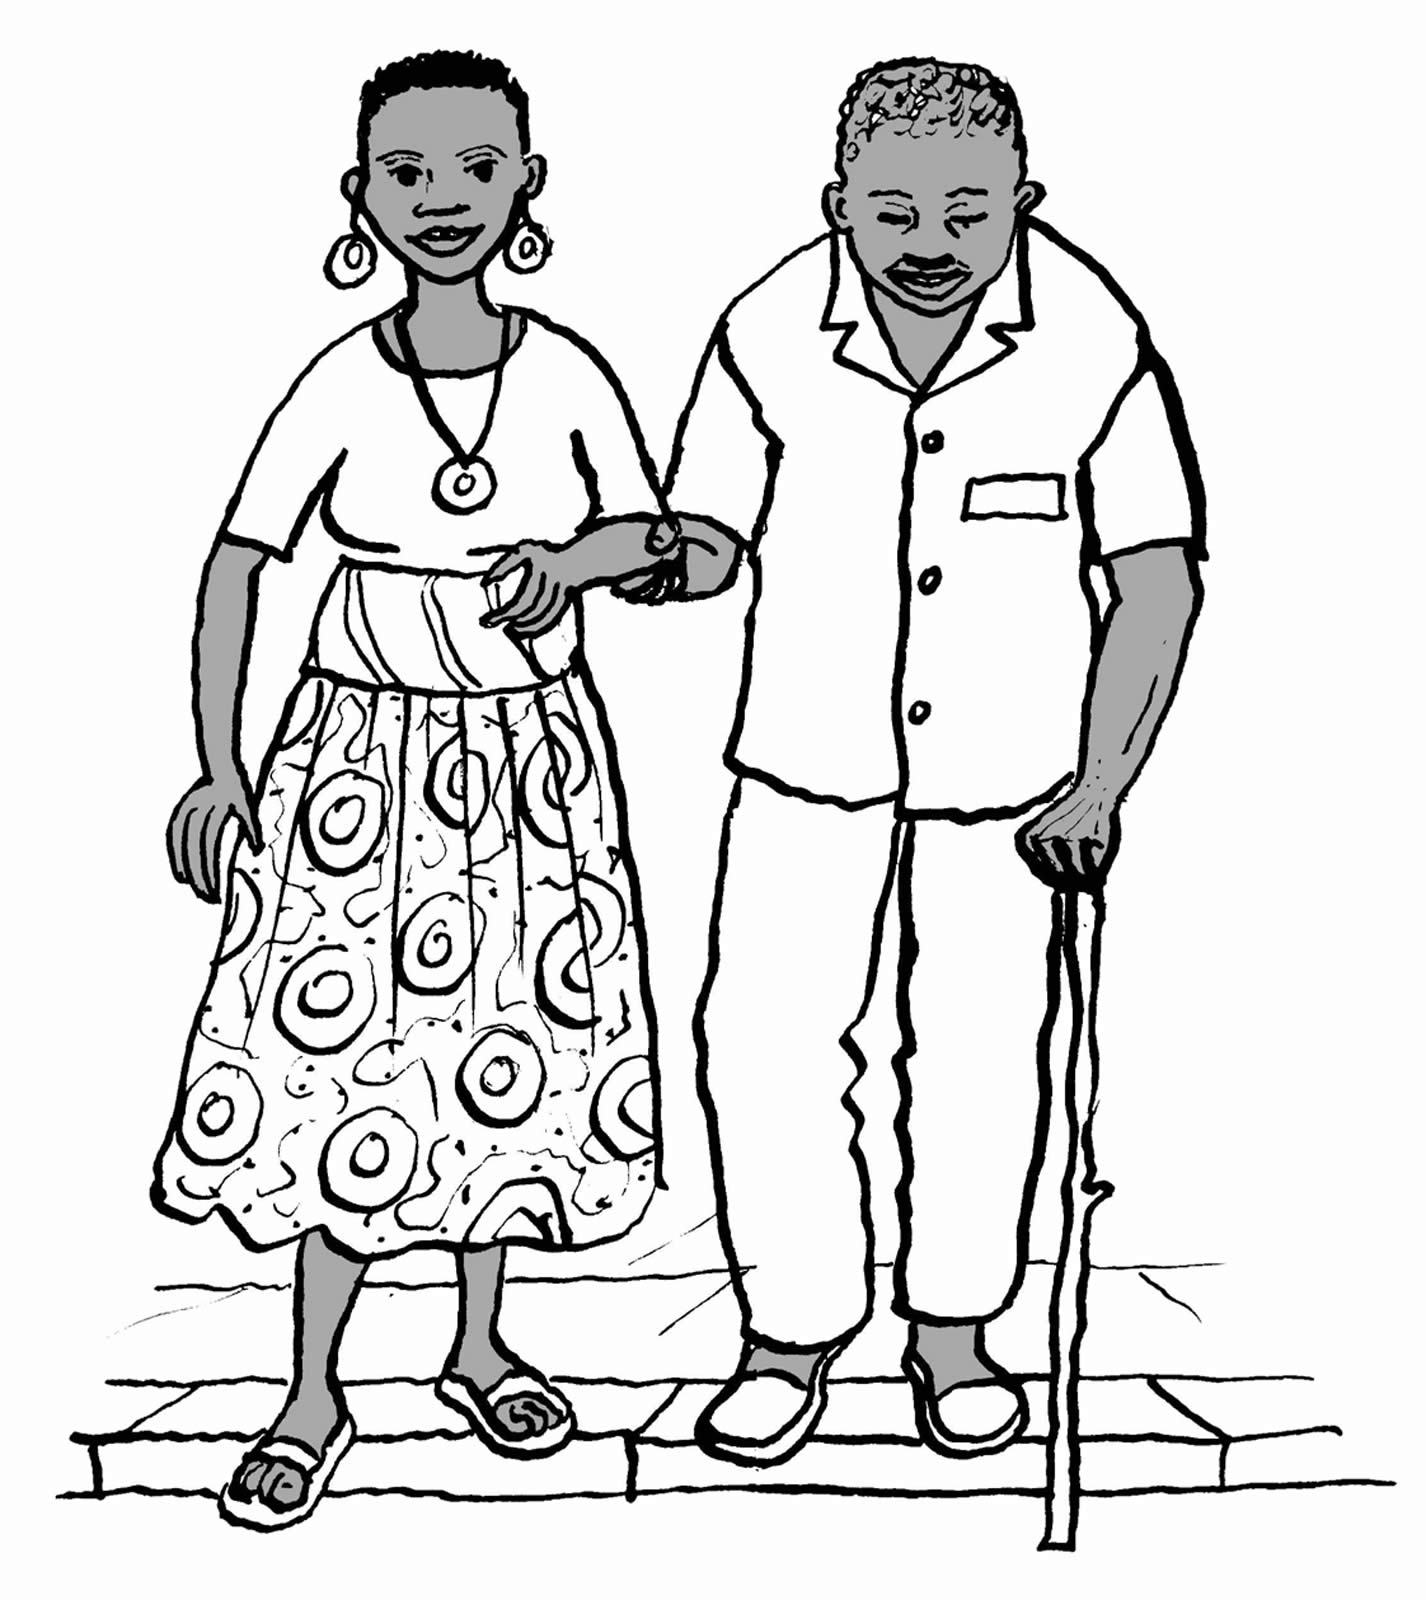 coloring book for visually impaired the best free visually drawing images download from 14 coloring book for visually impaired